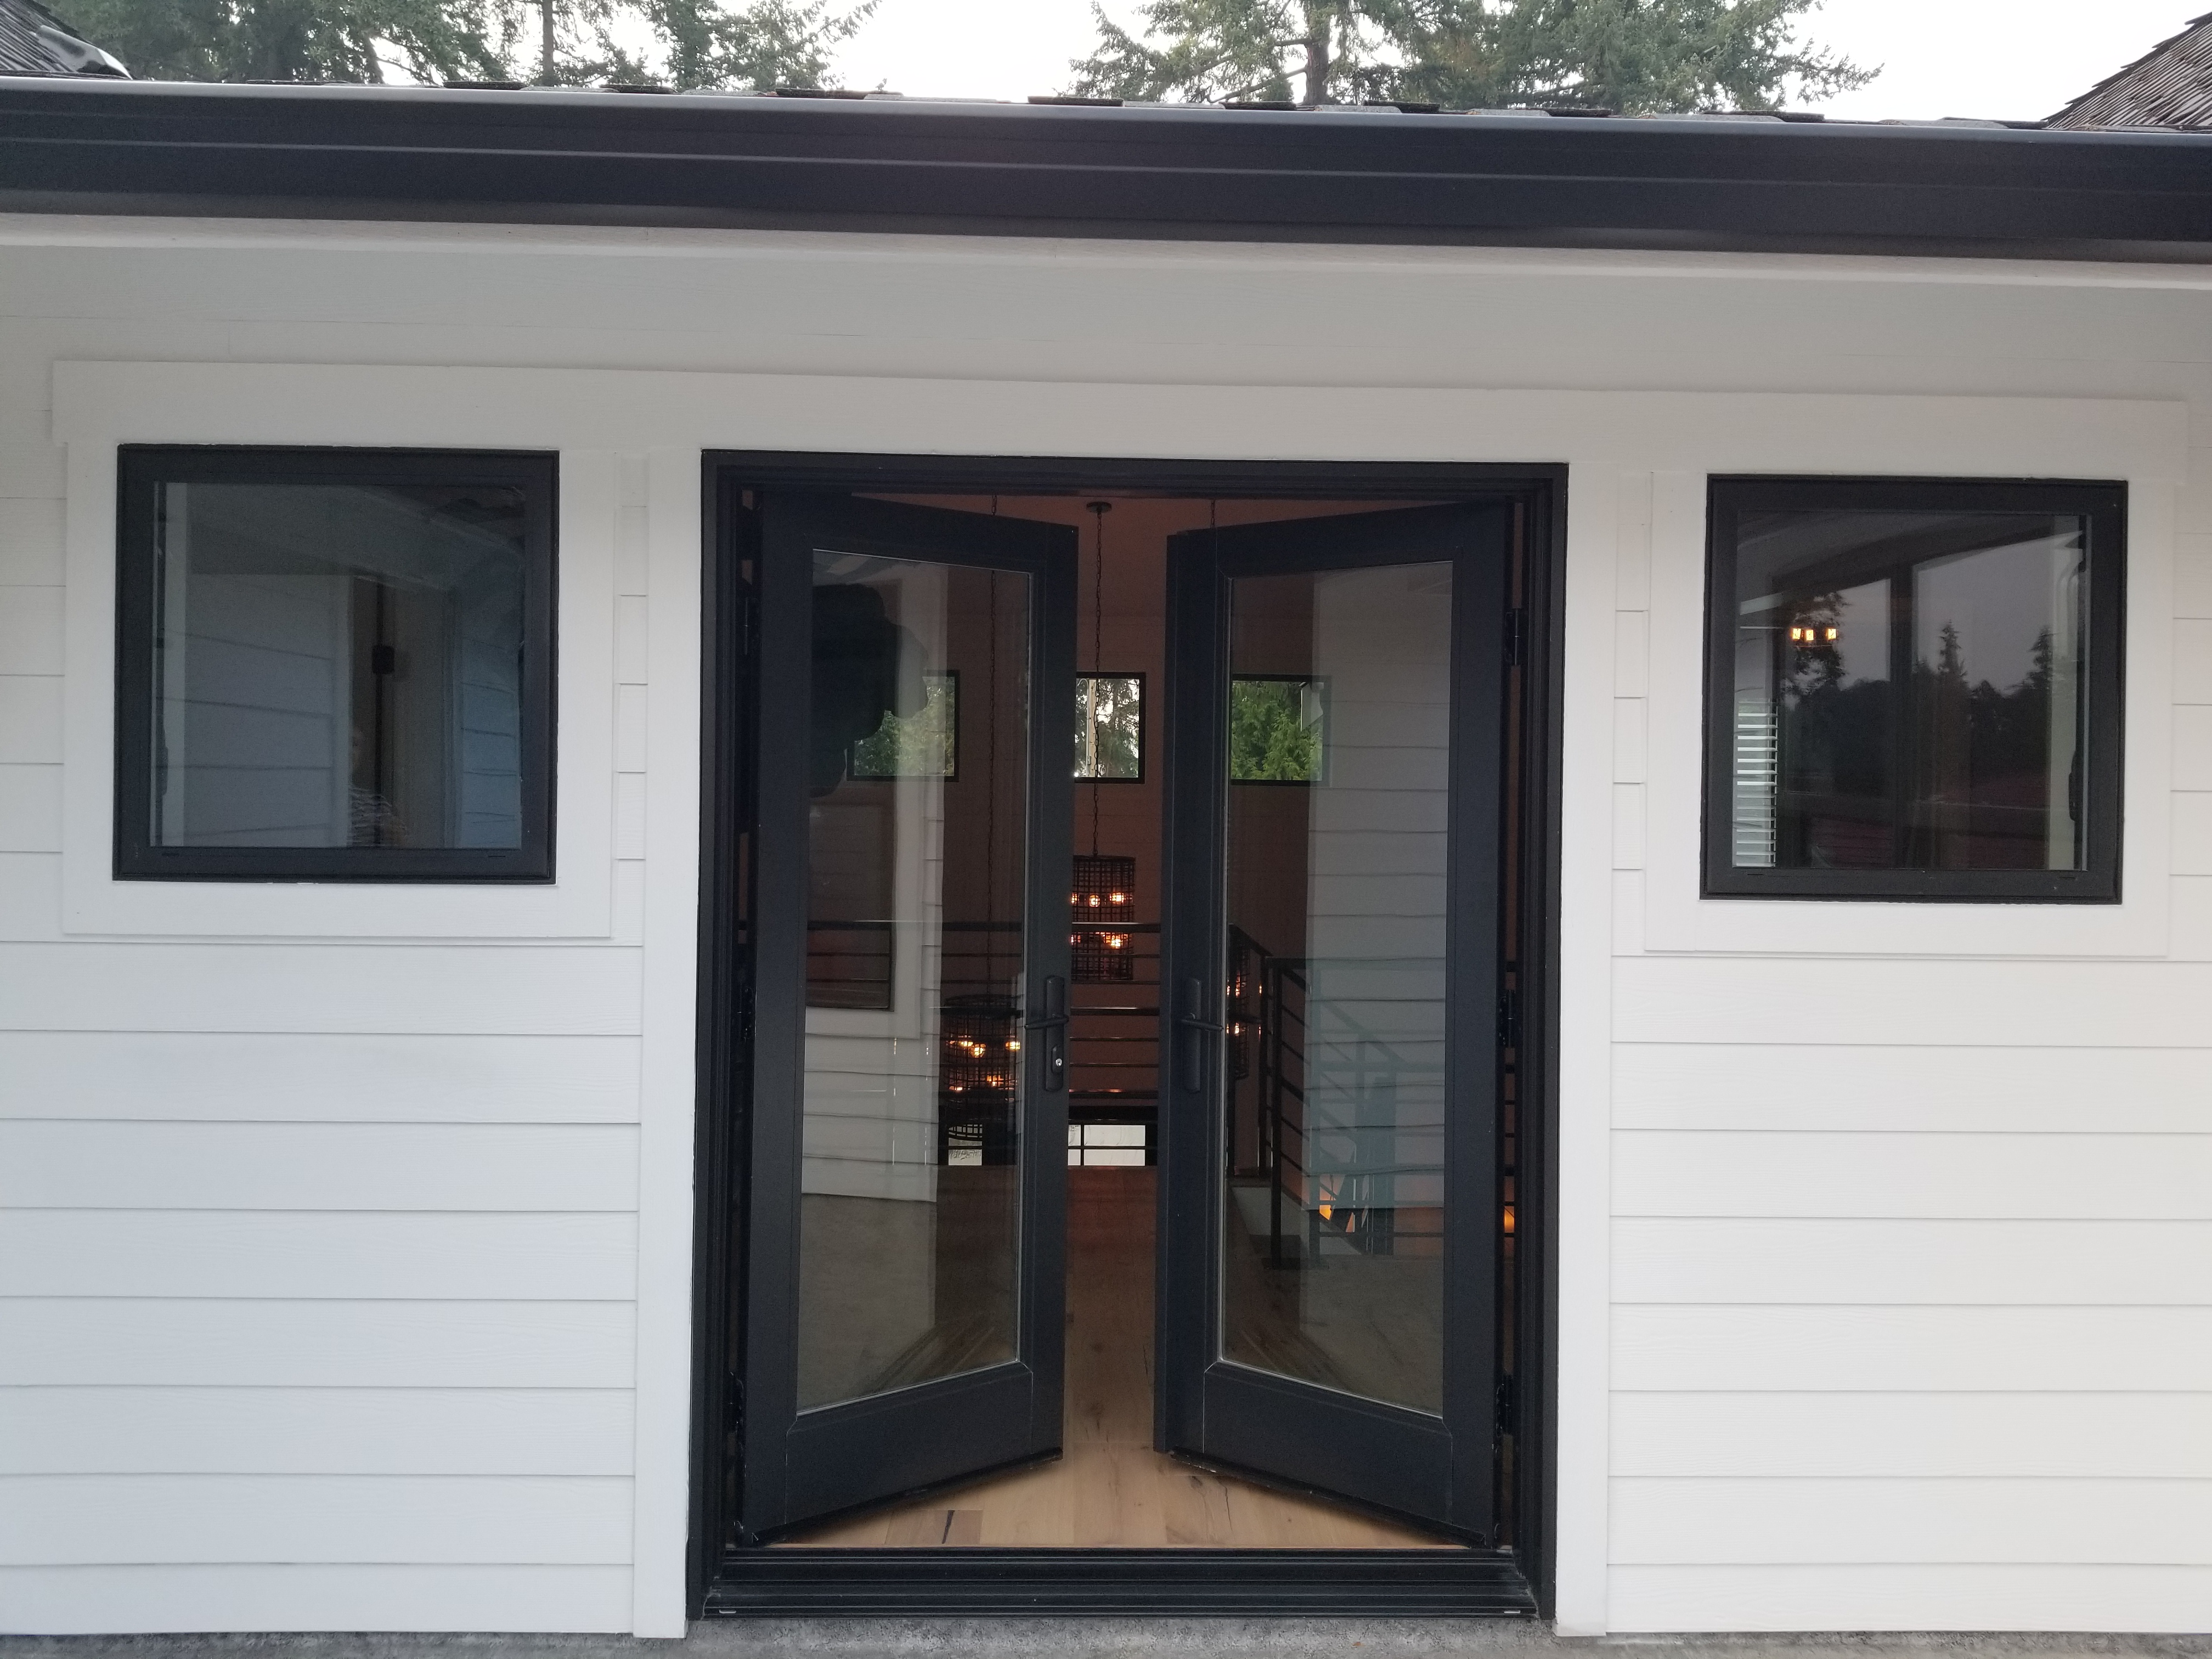 Inswing fiberglass patio doors in the color Black Bean